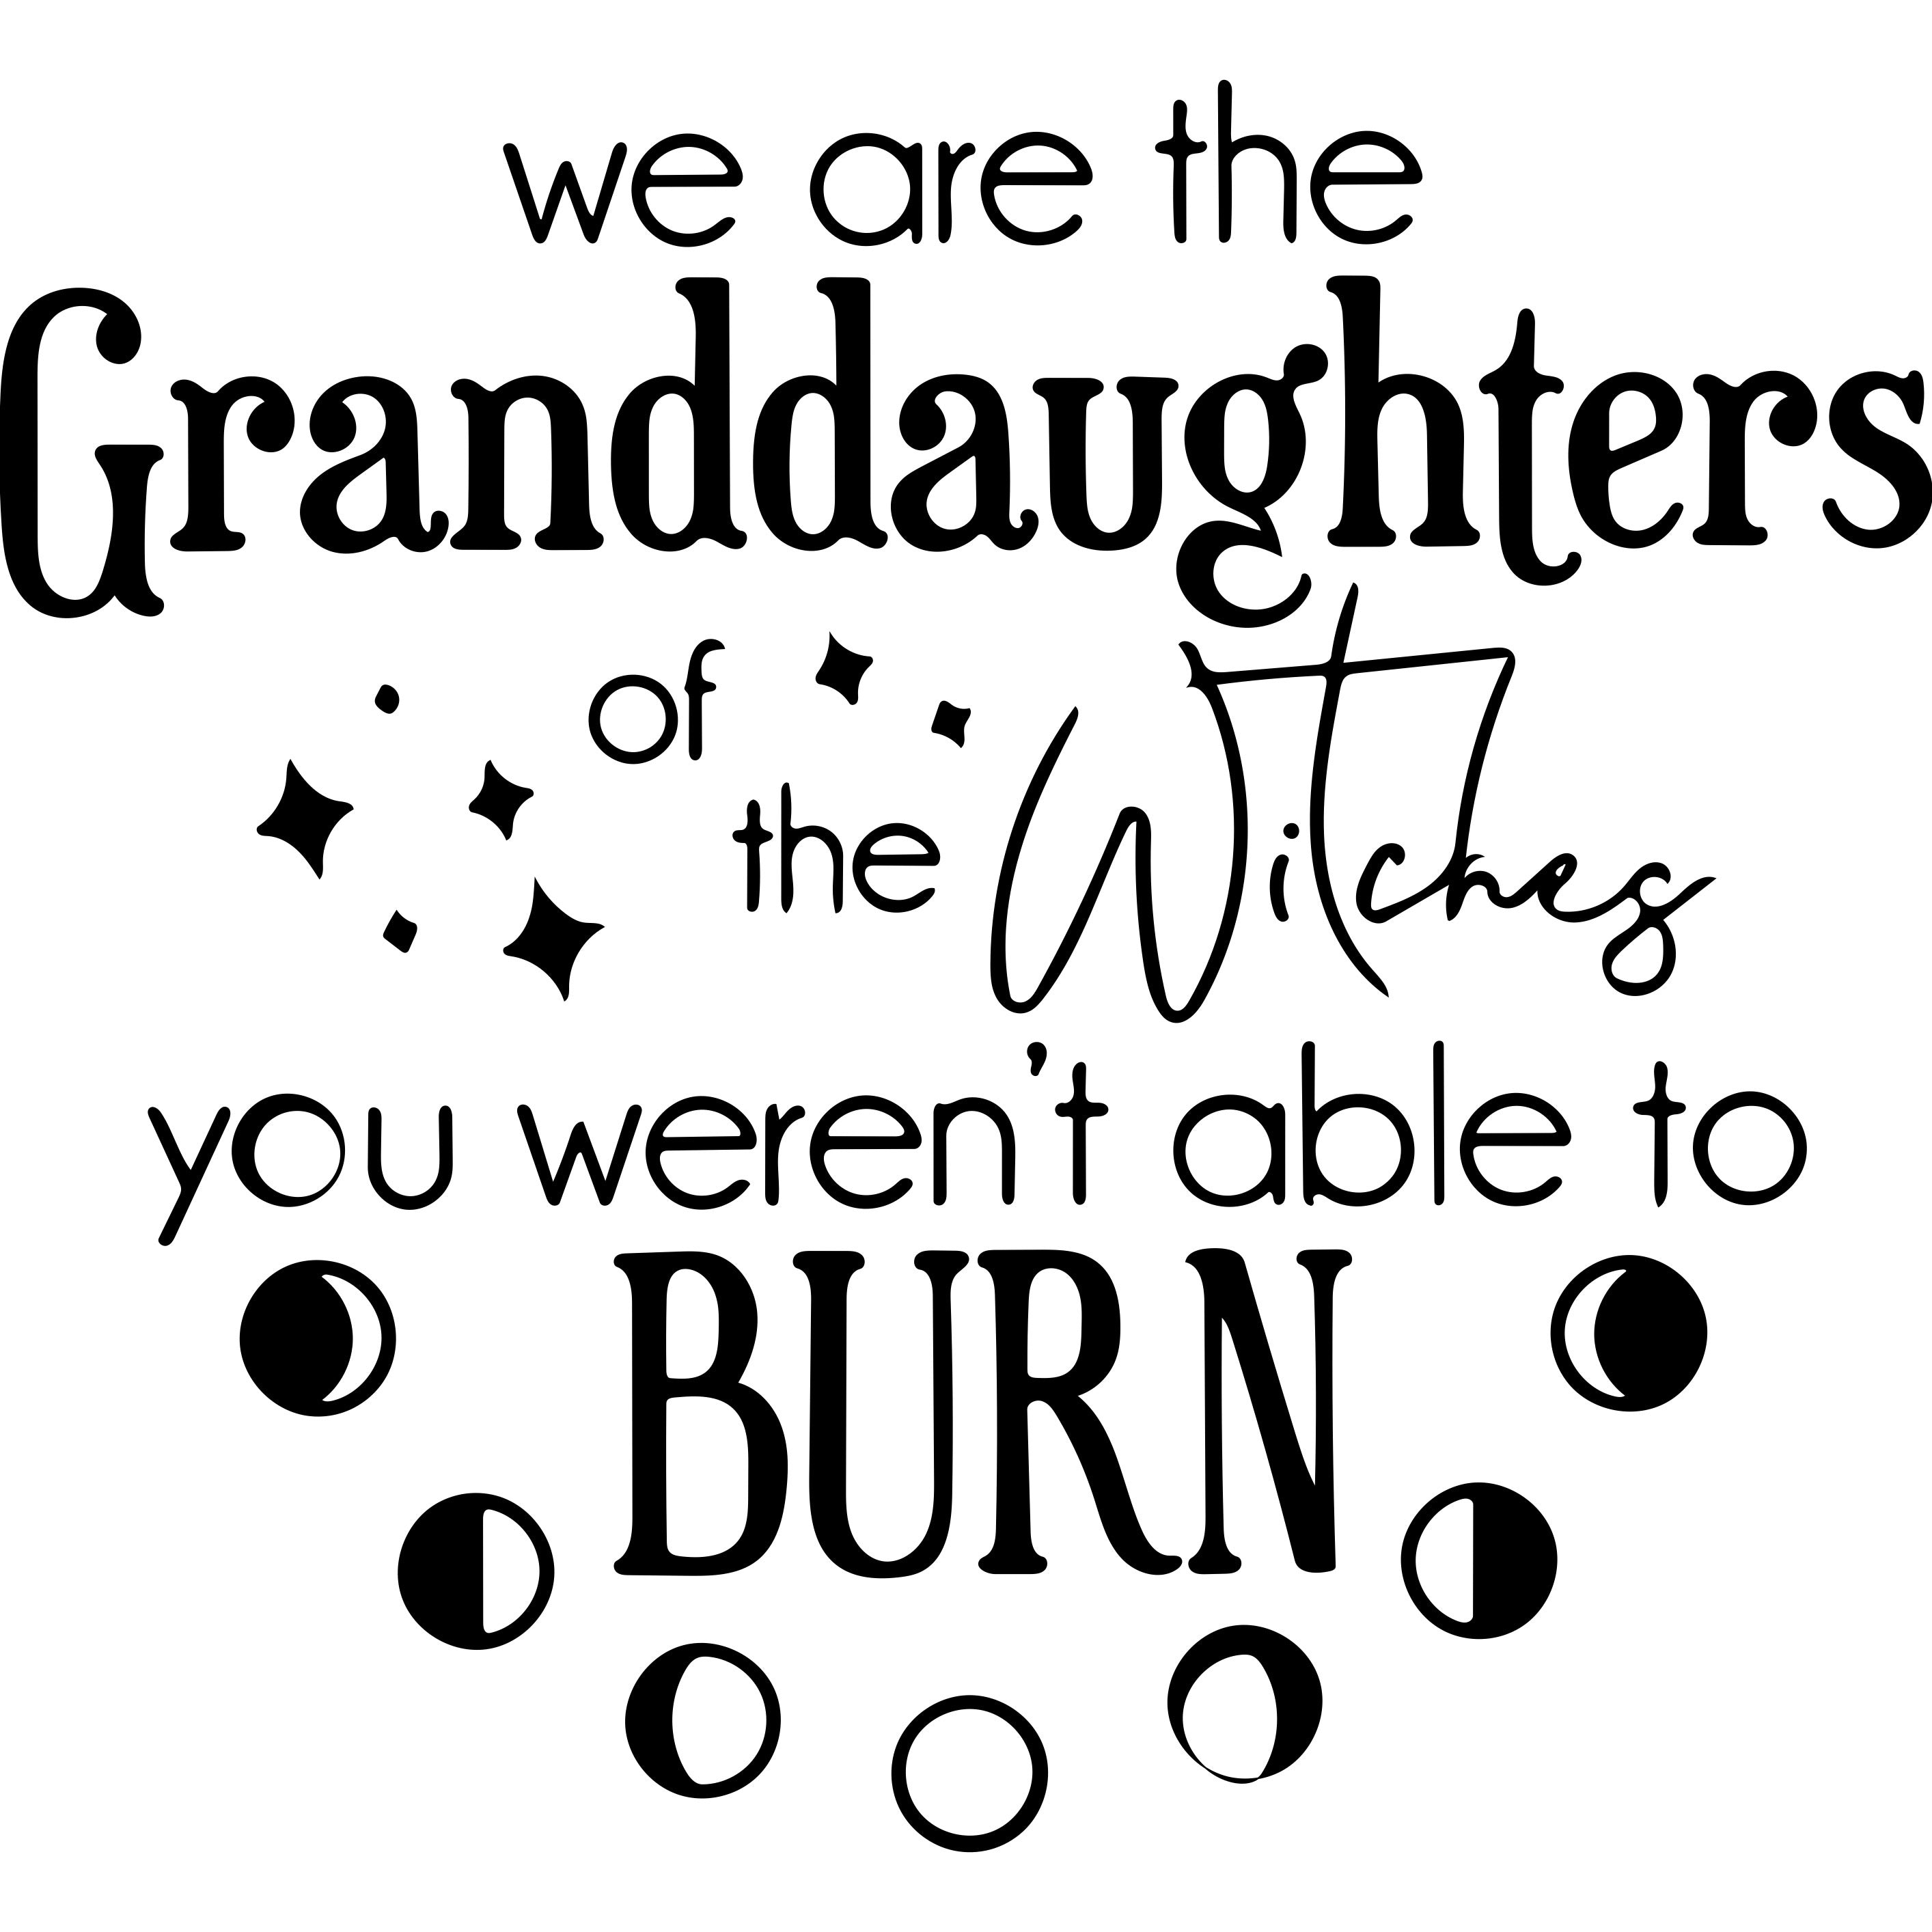 We are the granddaughters Decal